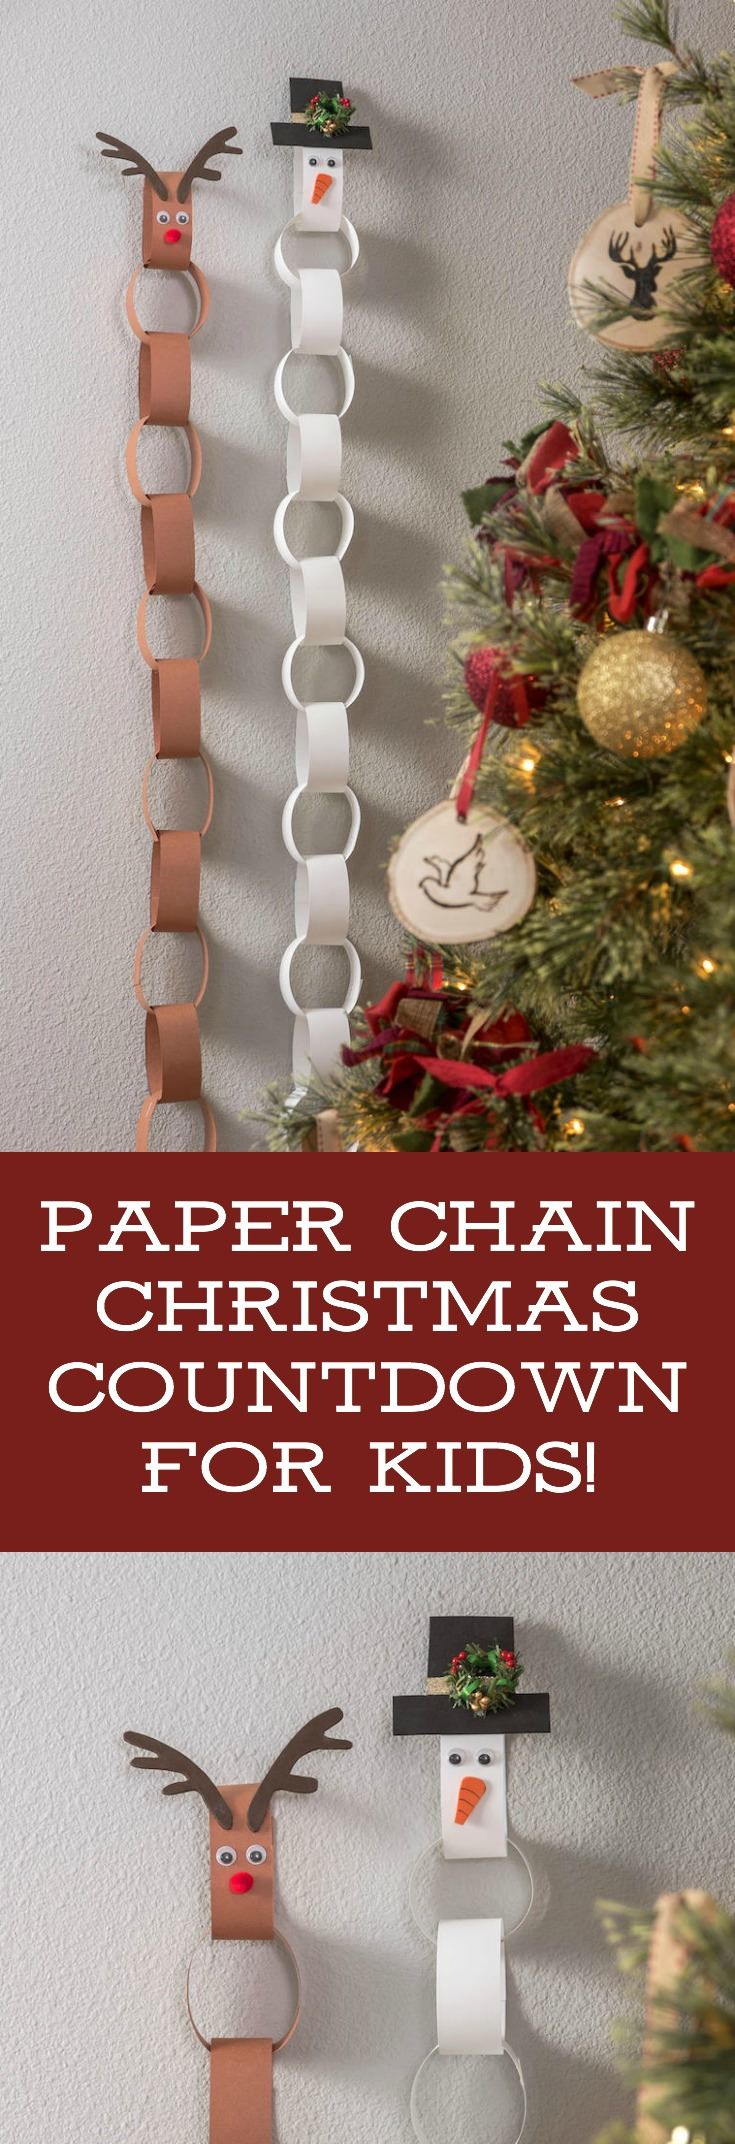 Make an EASY Paper Chain Kids Advent Calendar